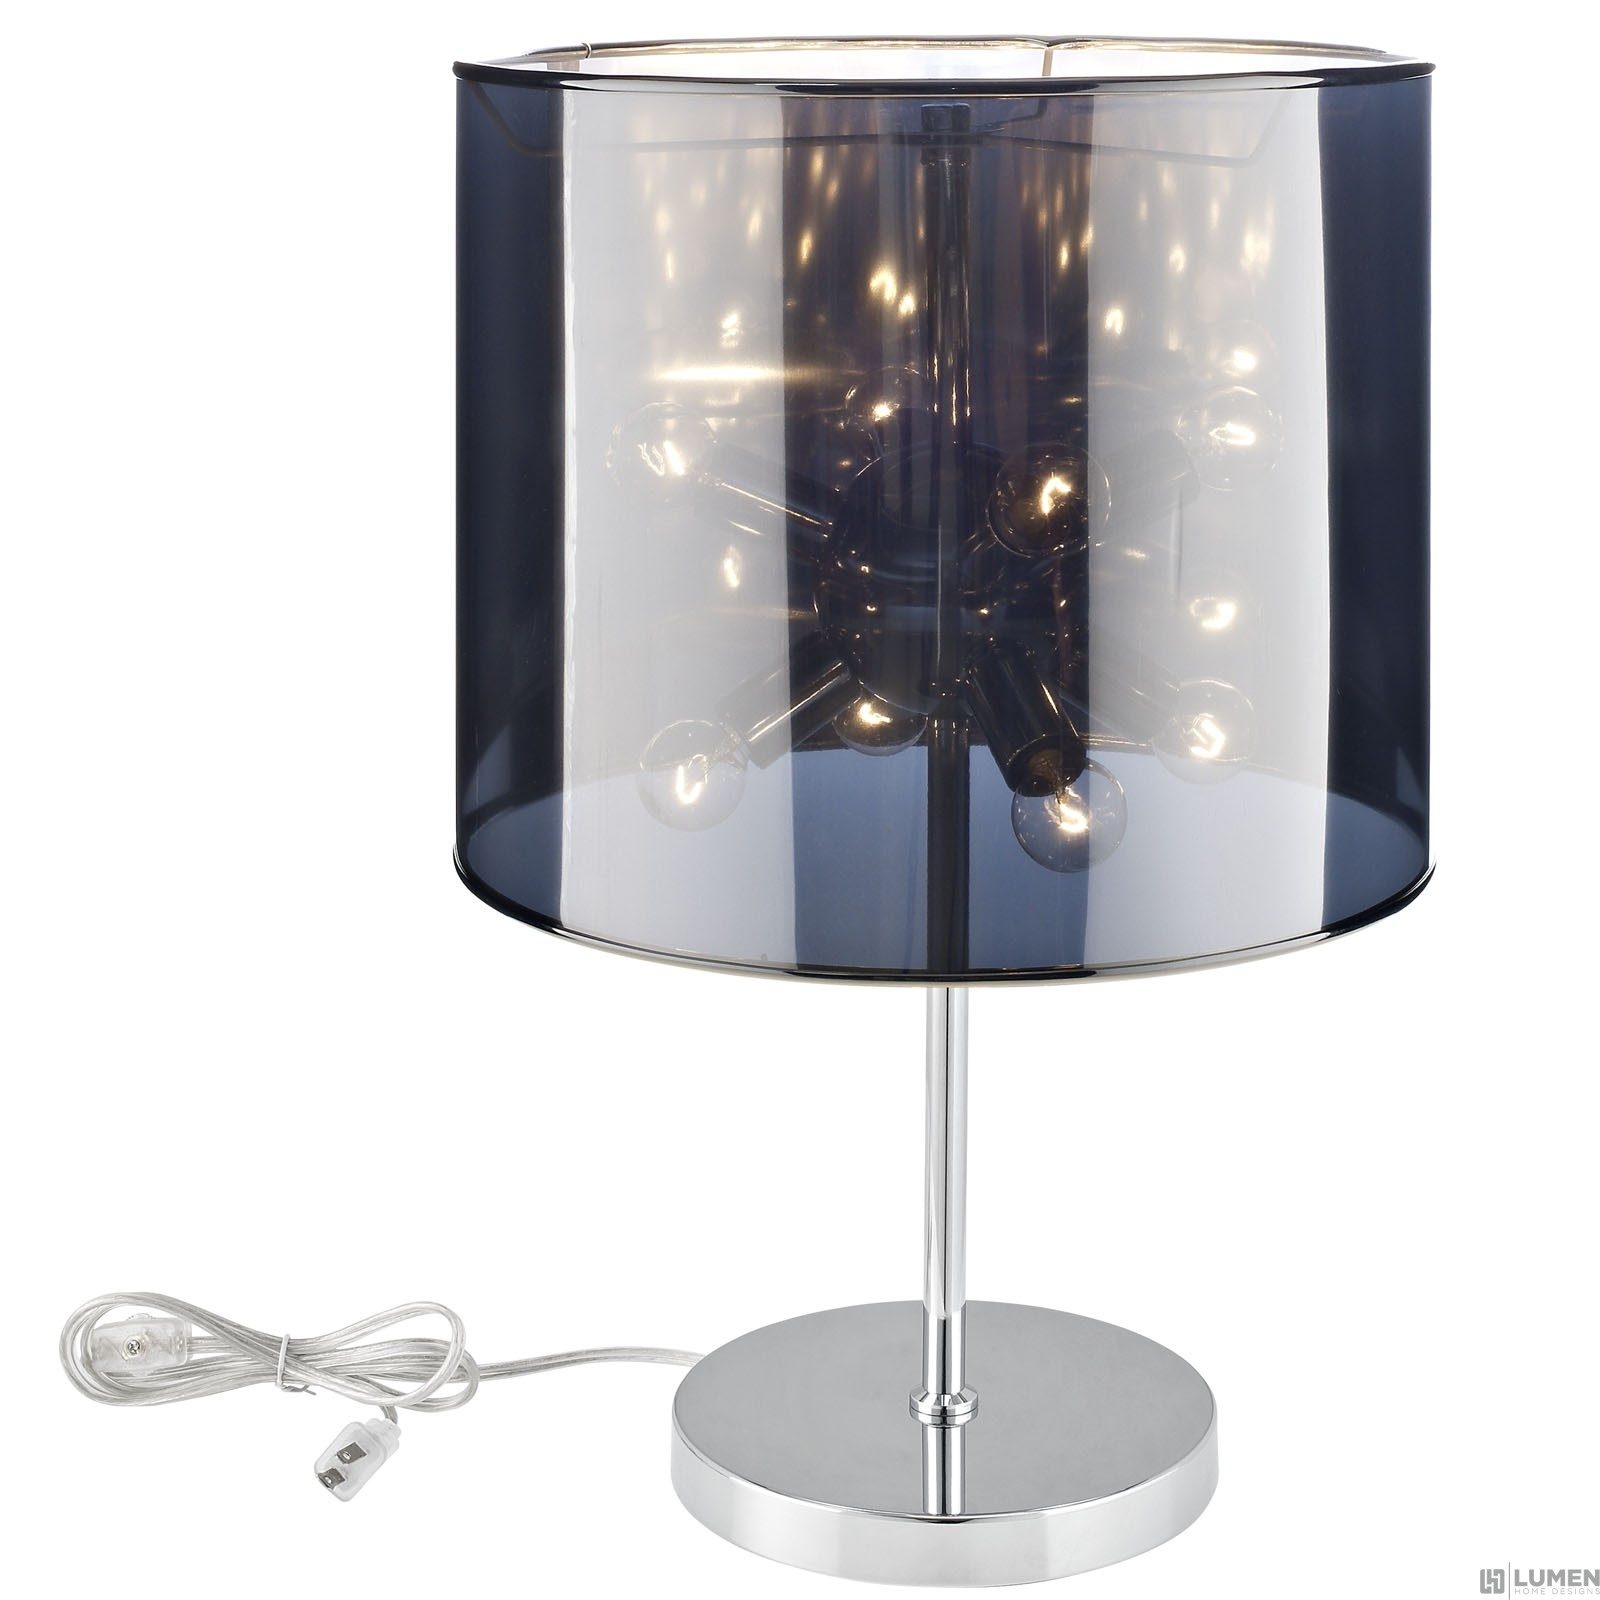 Lamp Slv Lhd 1219 Slv Table Lamp